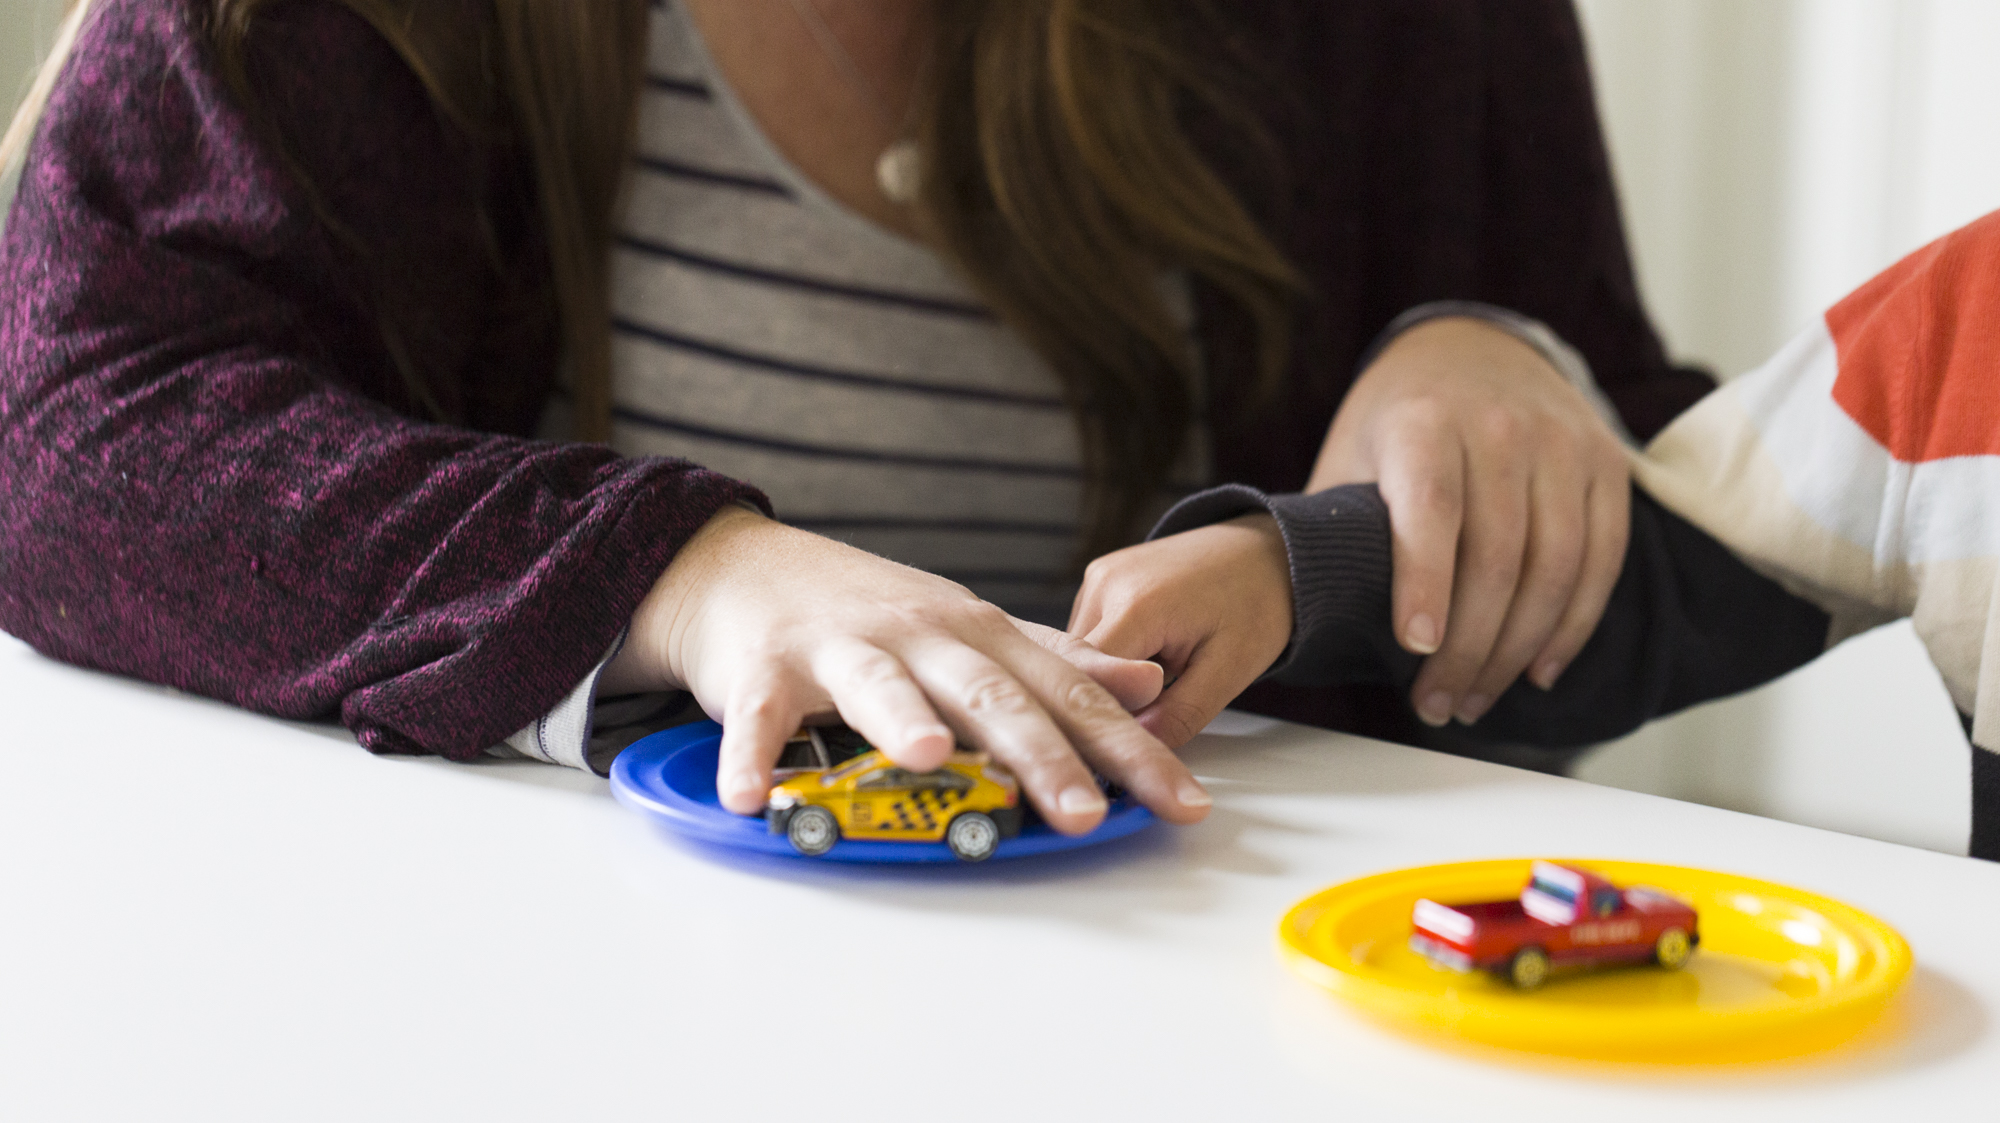 Therapist learning to provide ABA therapy to a child with autism using racing car toys